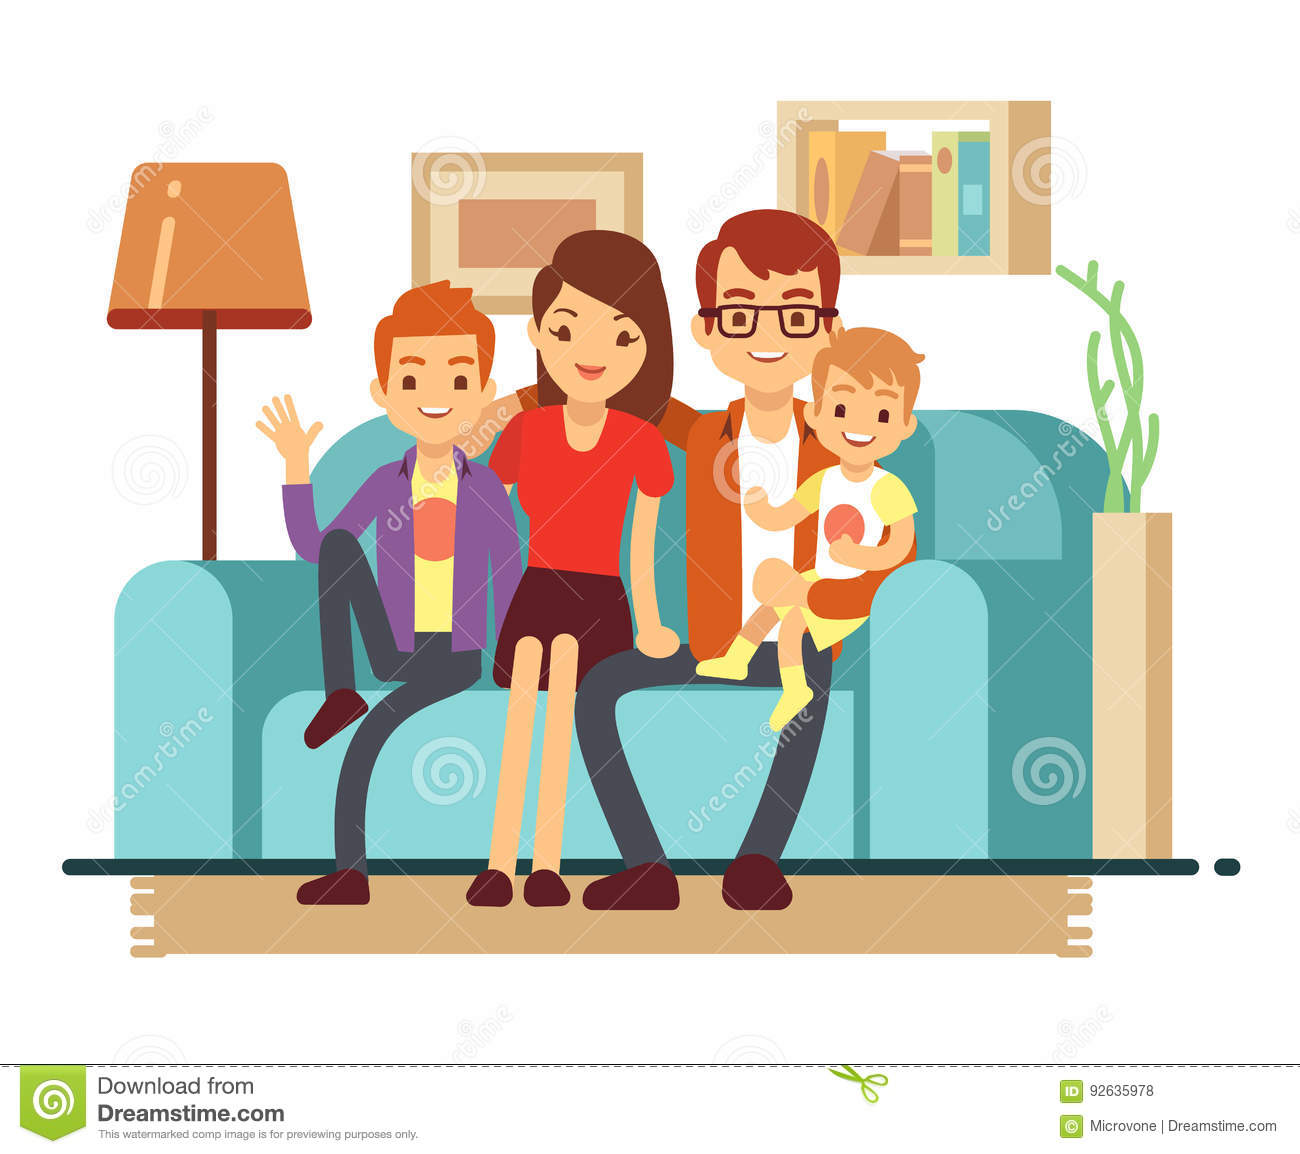 Wohnzimmer Cartoon Smiling Young Happy Family On Sofa Man Woman And Their